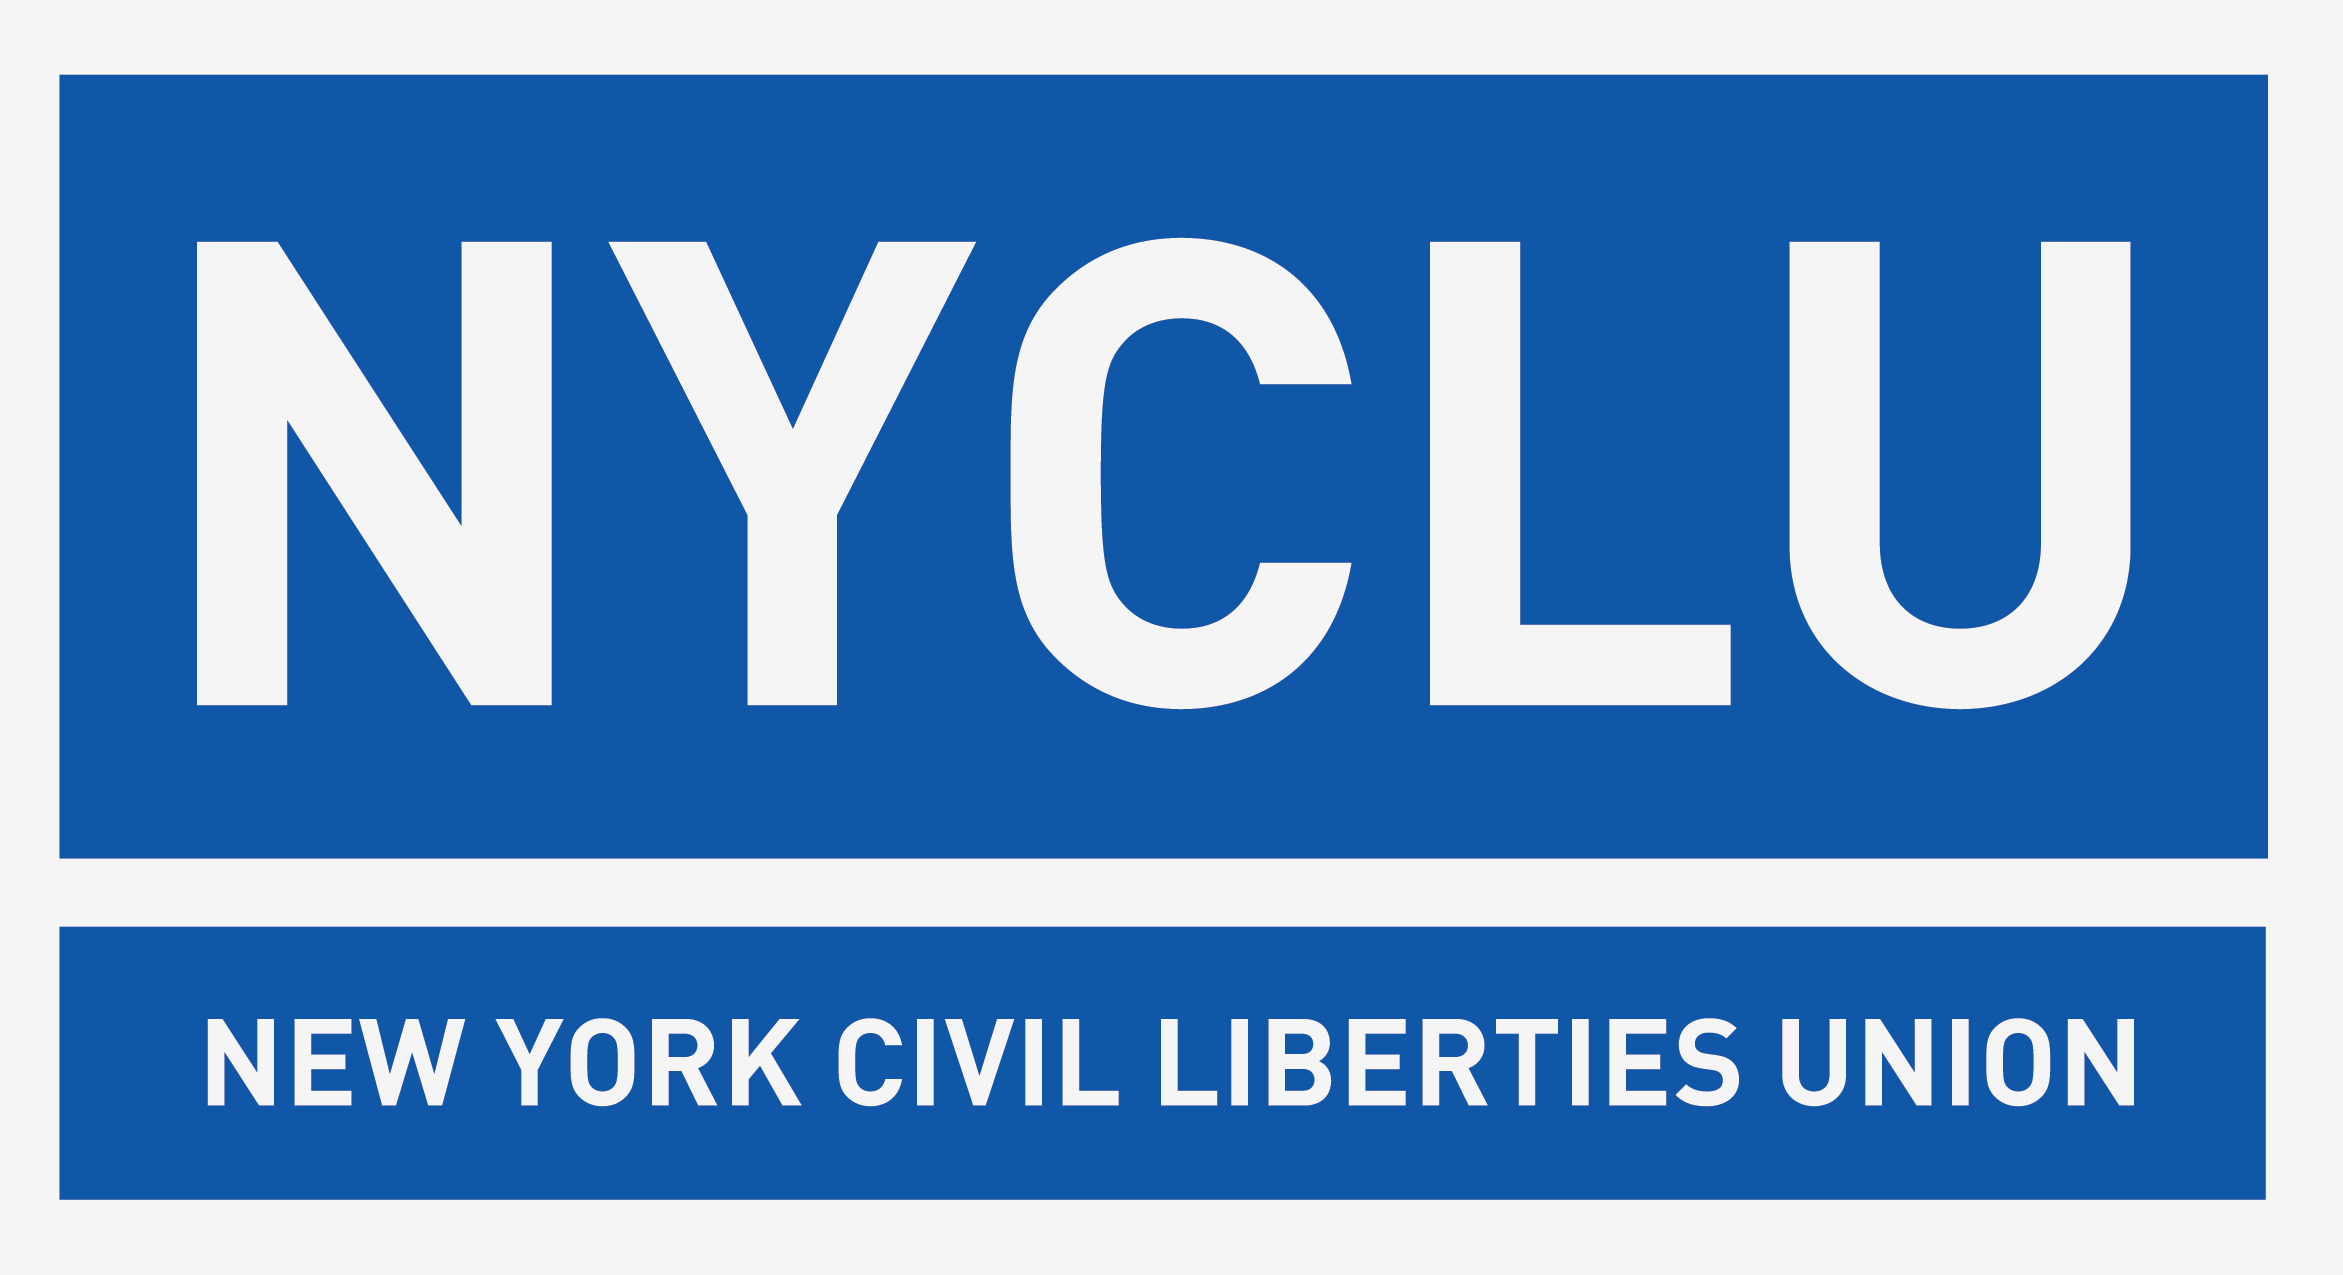 2018 NYCLU_Reduced_Logos_color_bck.png